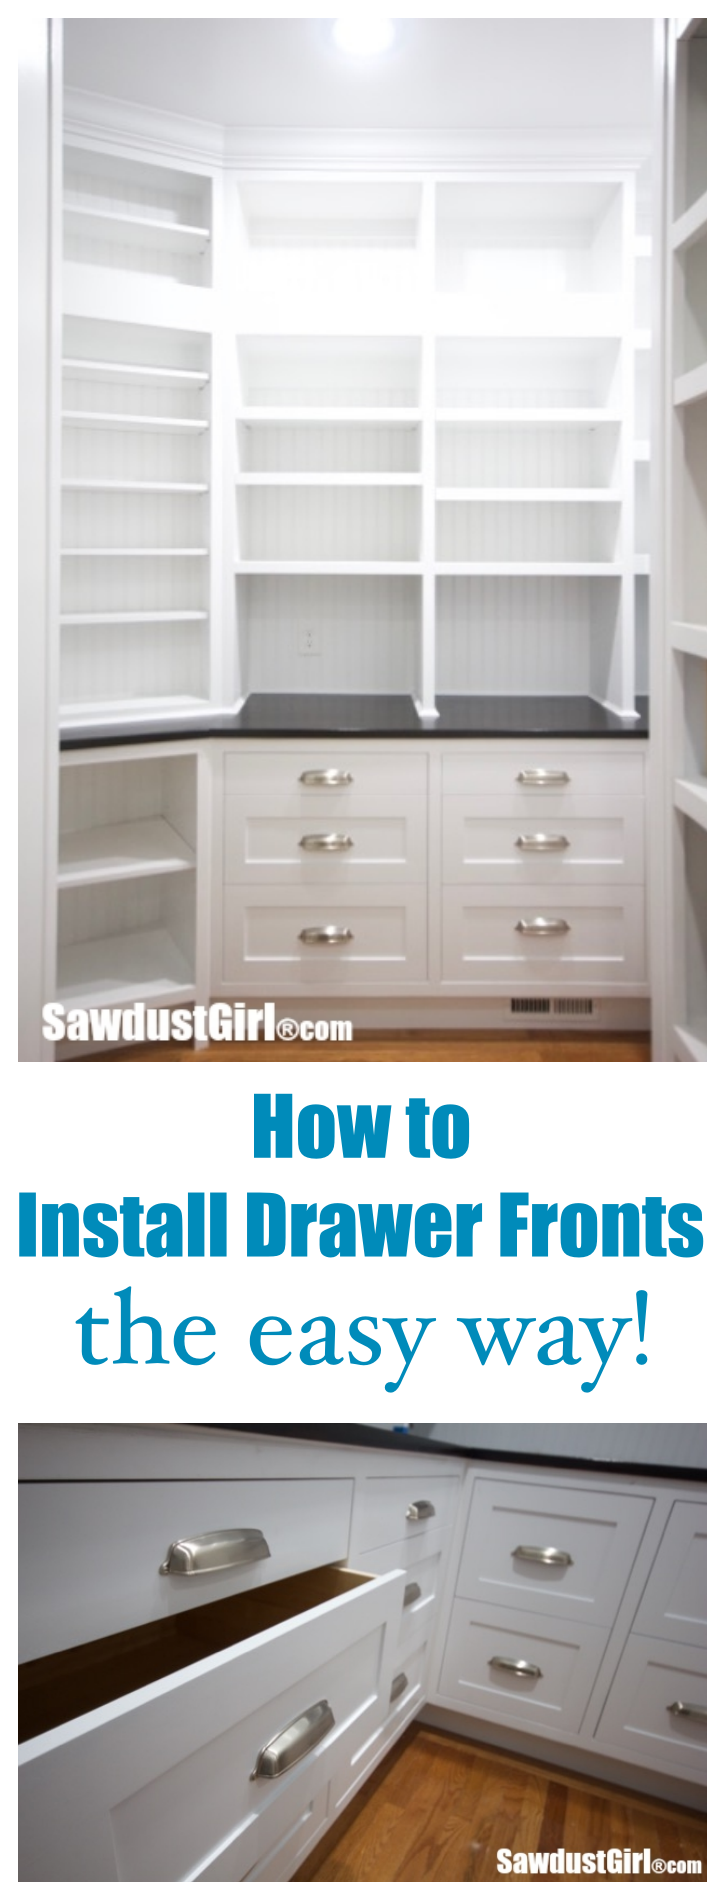 Best How To Install Cabinet Drawer Fronts Drawer Fronts Home 400 x 300